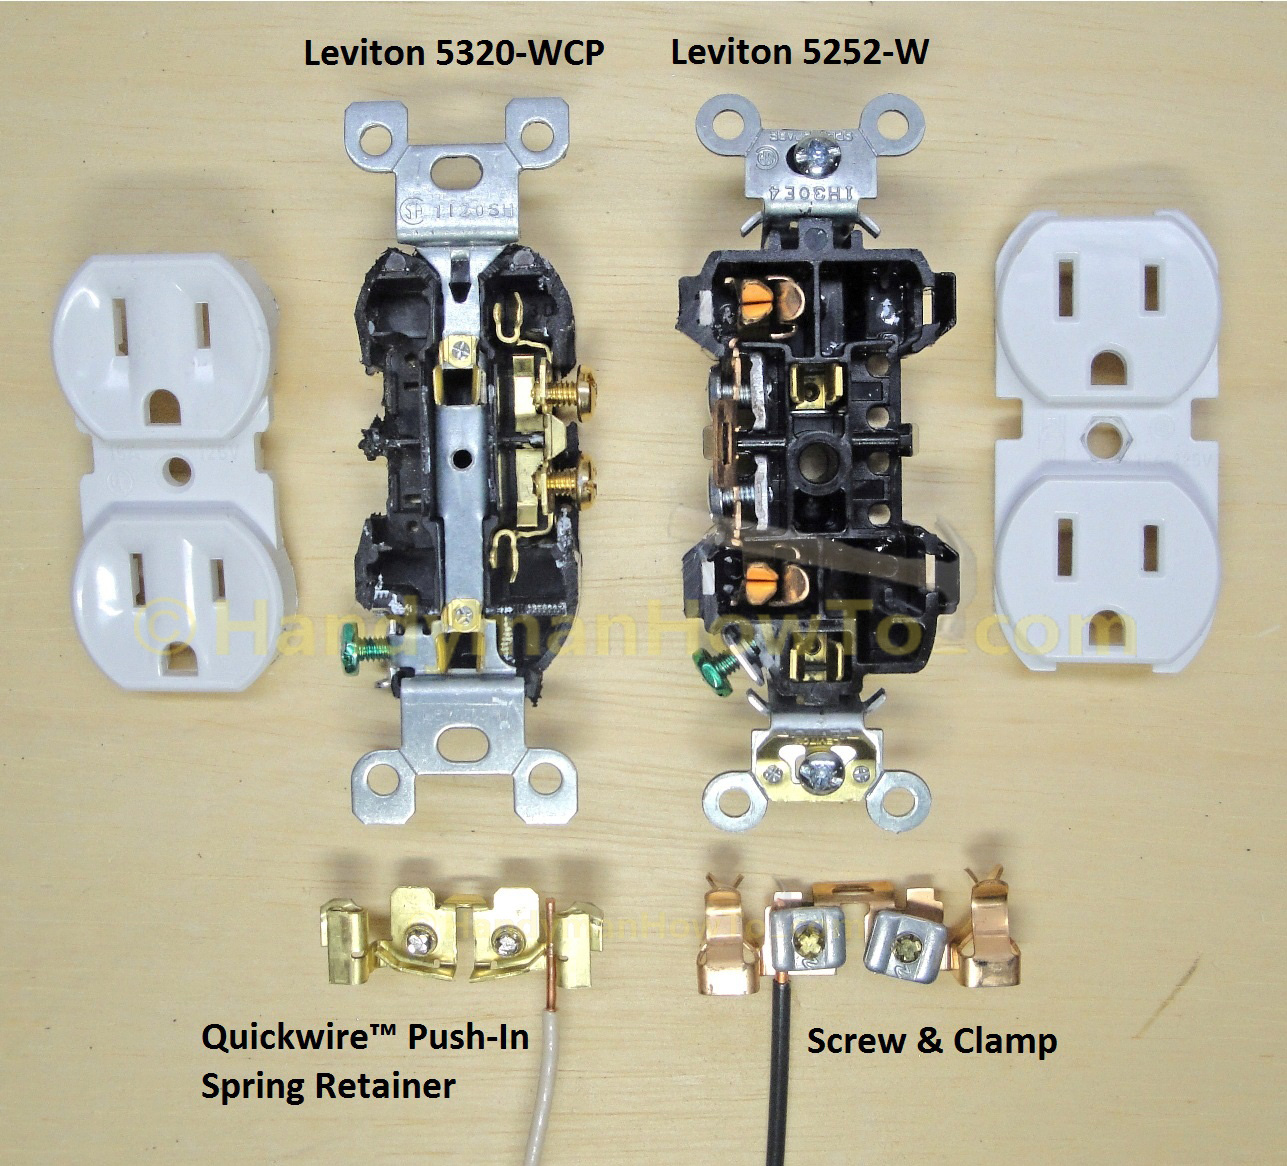 The Differences In Our Electrical Systems